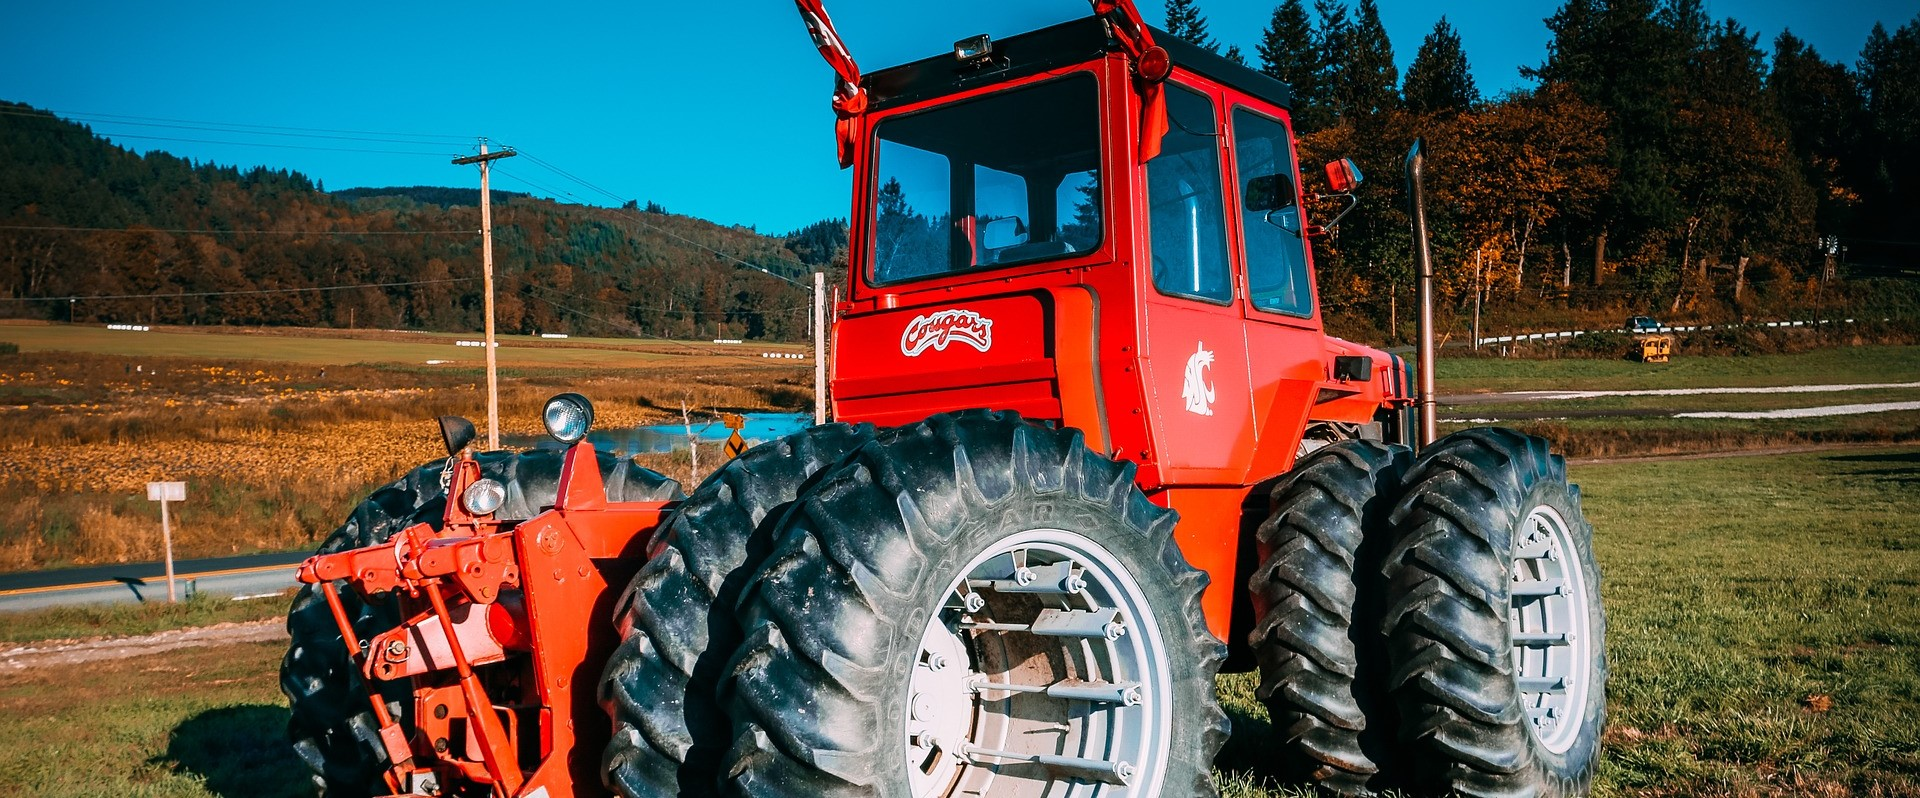 Your tractor donation can help increase breast cancer survival rates in Cary, NC!